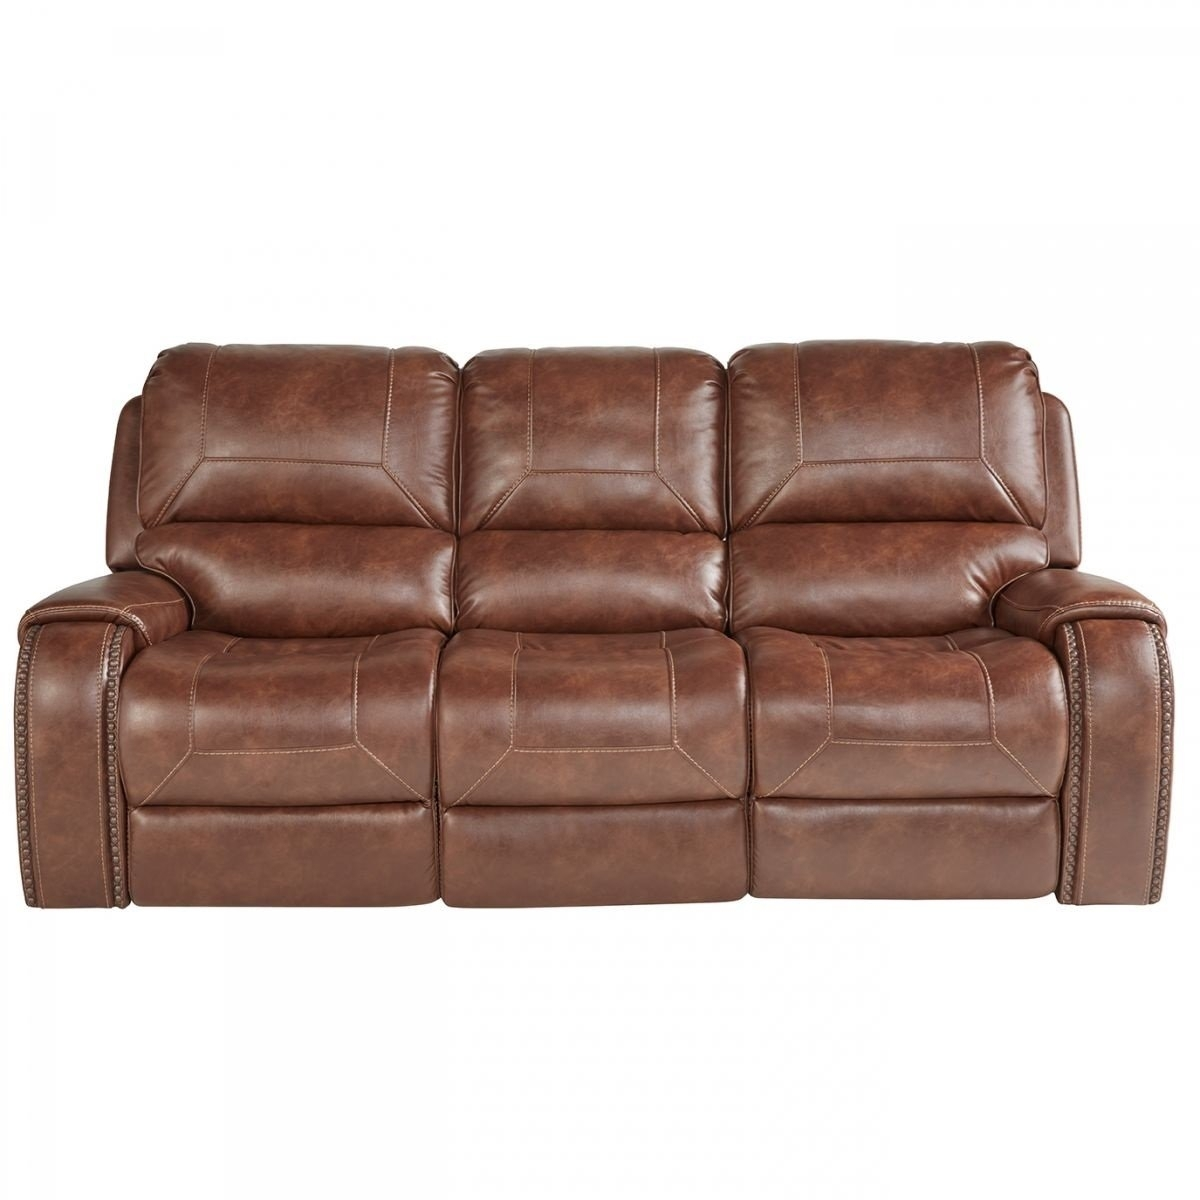 Buy Wescott Brown Reclining Sofa Online | Badcock & More Pertaining To Waylon 3 Piece Power Reclining Sectionals (Image 5 of 25)